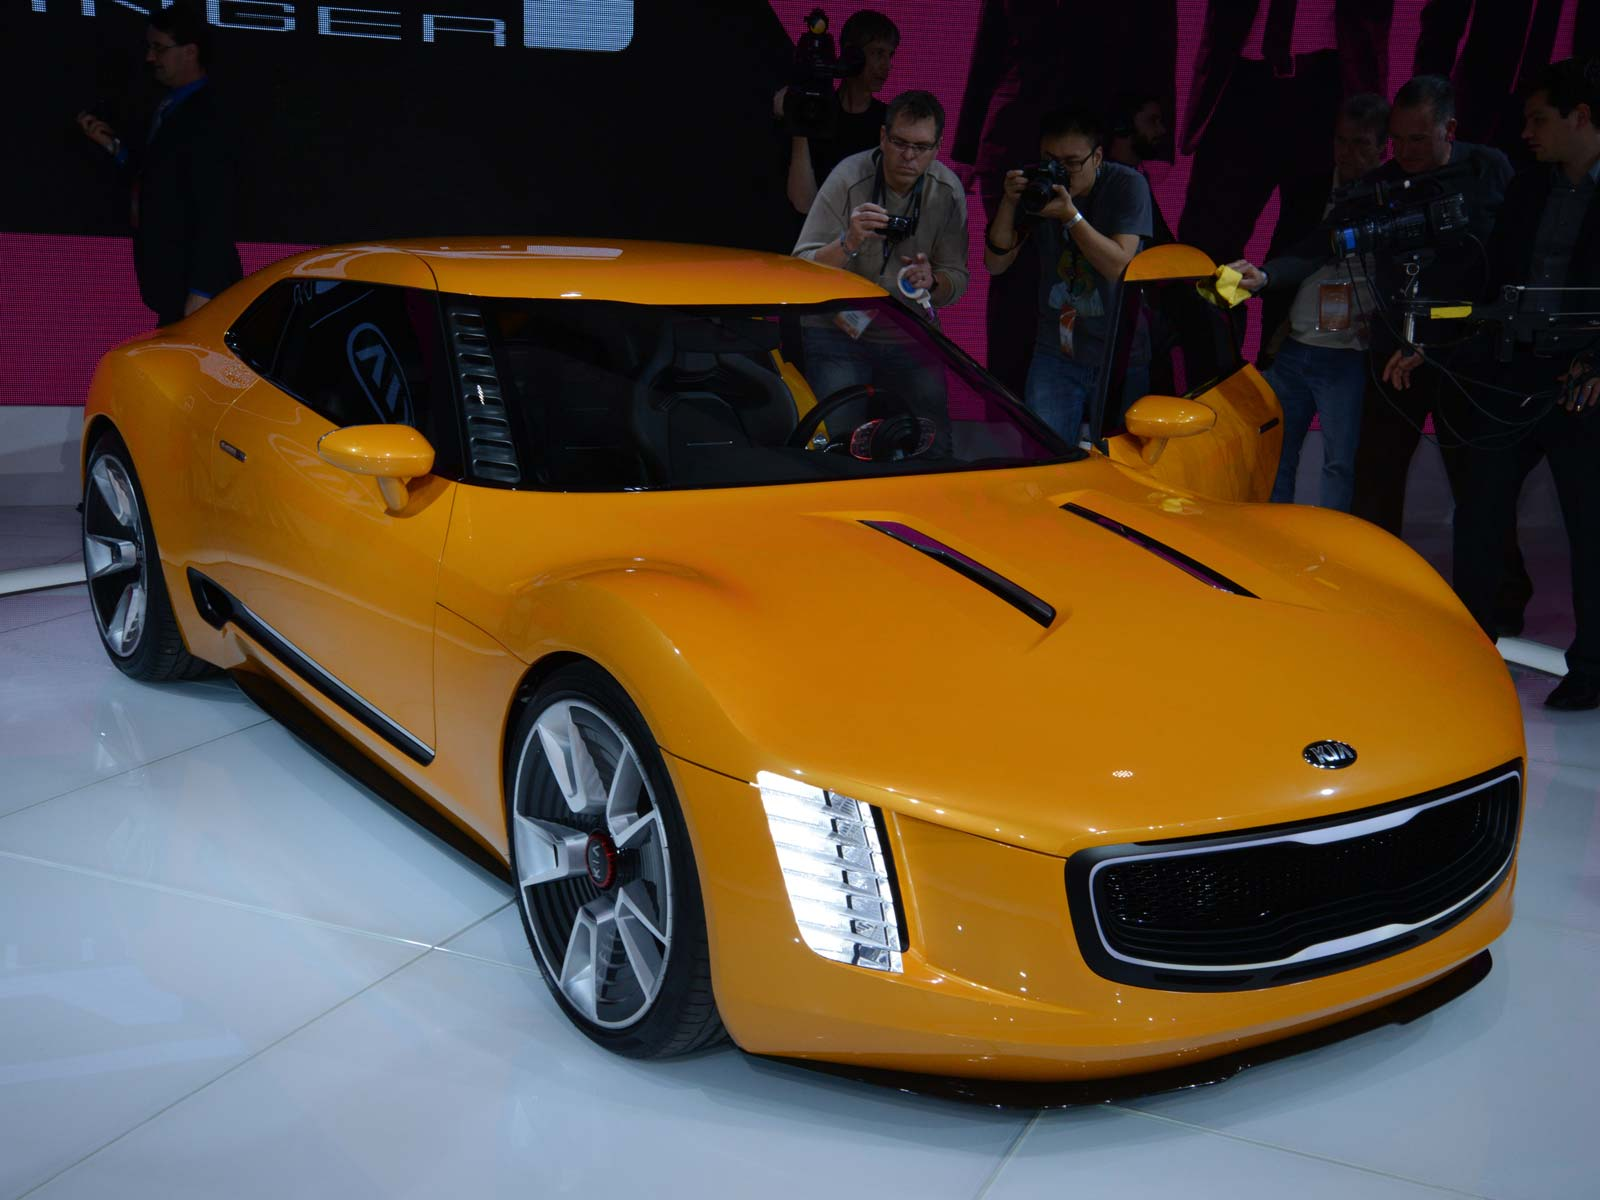 The GT4 concept car unveiled at the North American International Auto Show 2014.